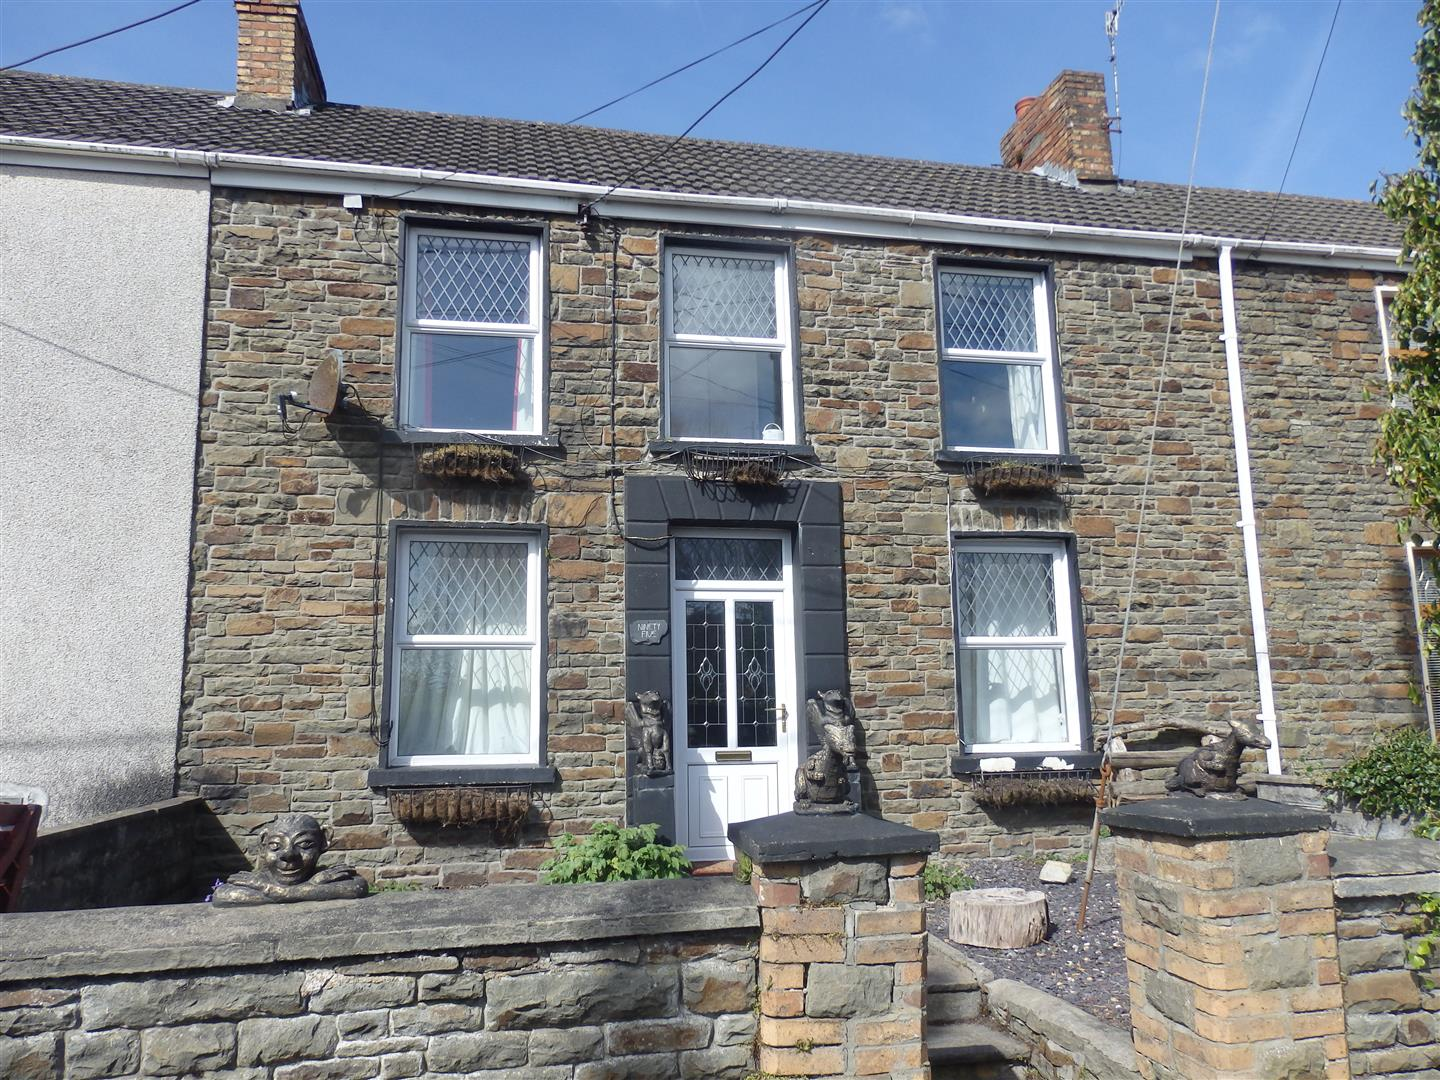 95 Pencoed Road, Burry Port, Llanelli, Carmarthenshire